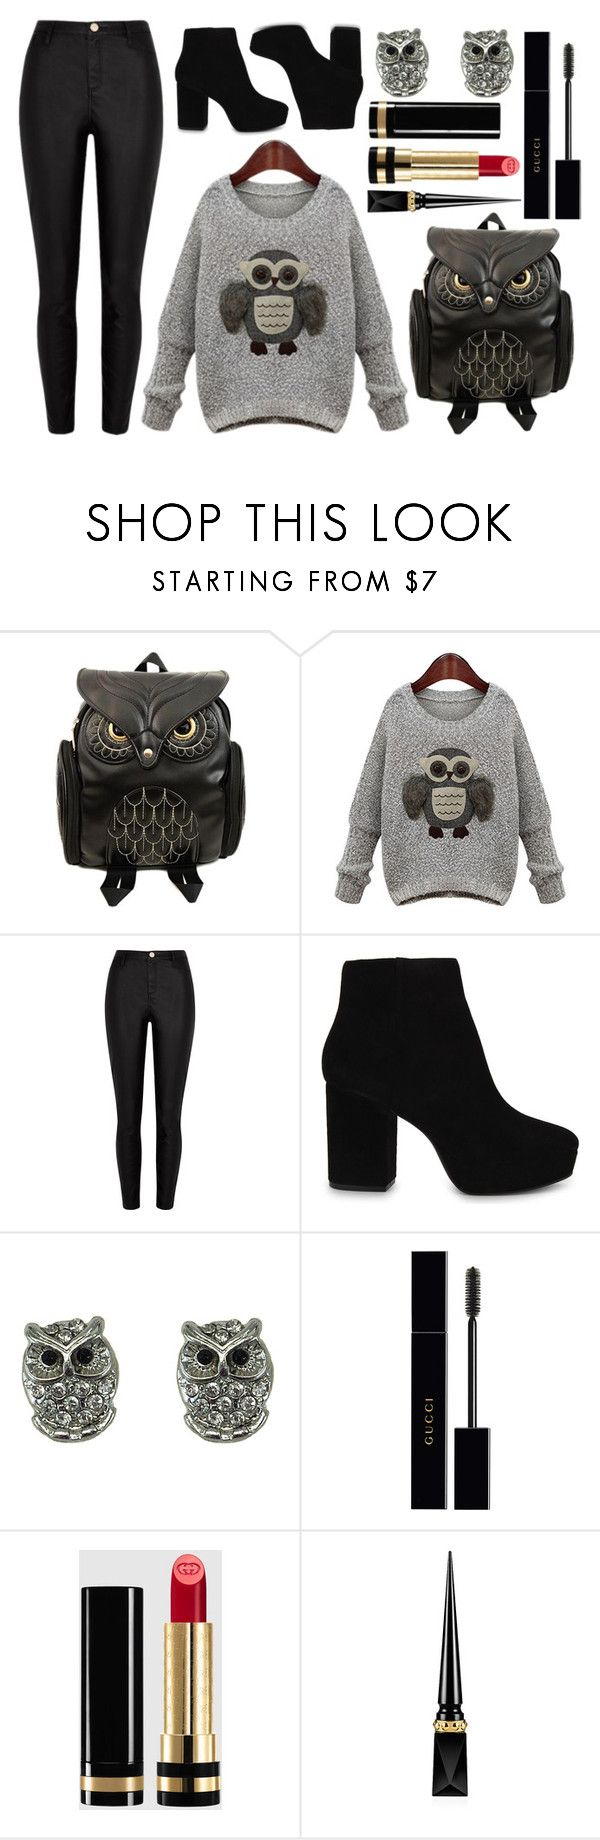 """Owl Backpack"" by princess13inred ❤ liked on Polyvore featuring River Island, ALDO, Gucci and Christian Louboutin"